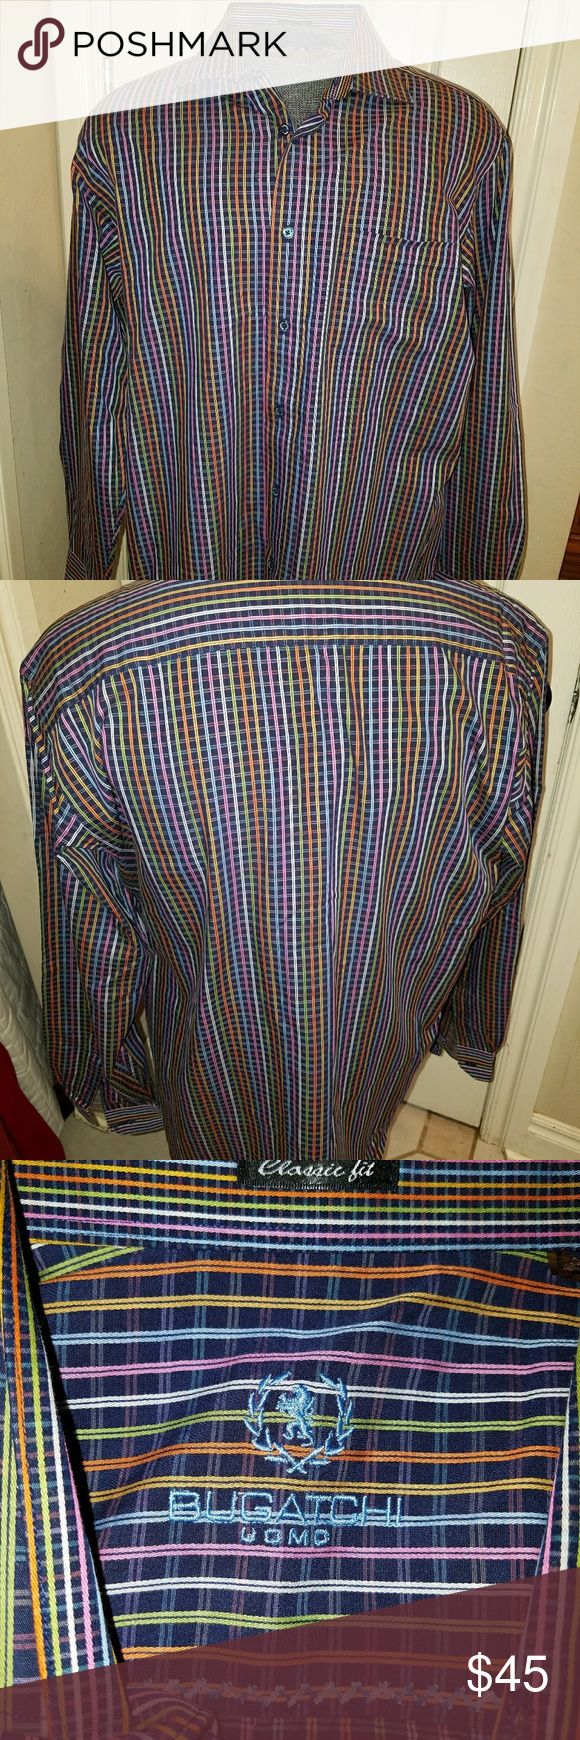 BUGATCHI CLASSIC FIT SIZE LARGE Multicolor striped bugatchi classic fit size large. This shirt is in like new condition from a clean non-smoking home Bugatchi Shirts